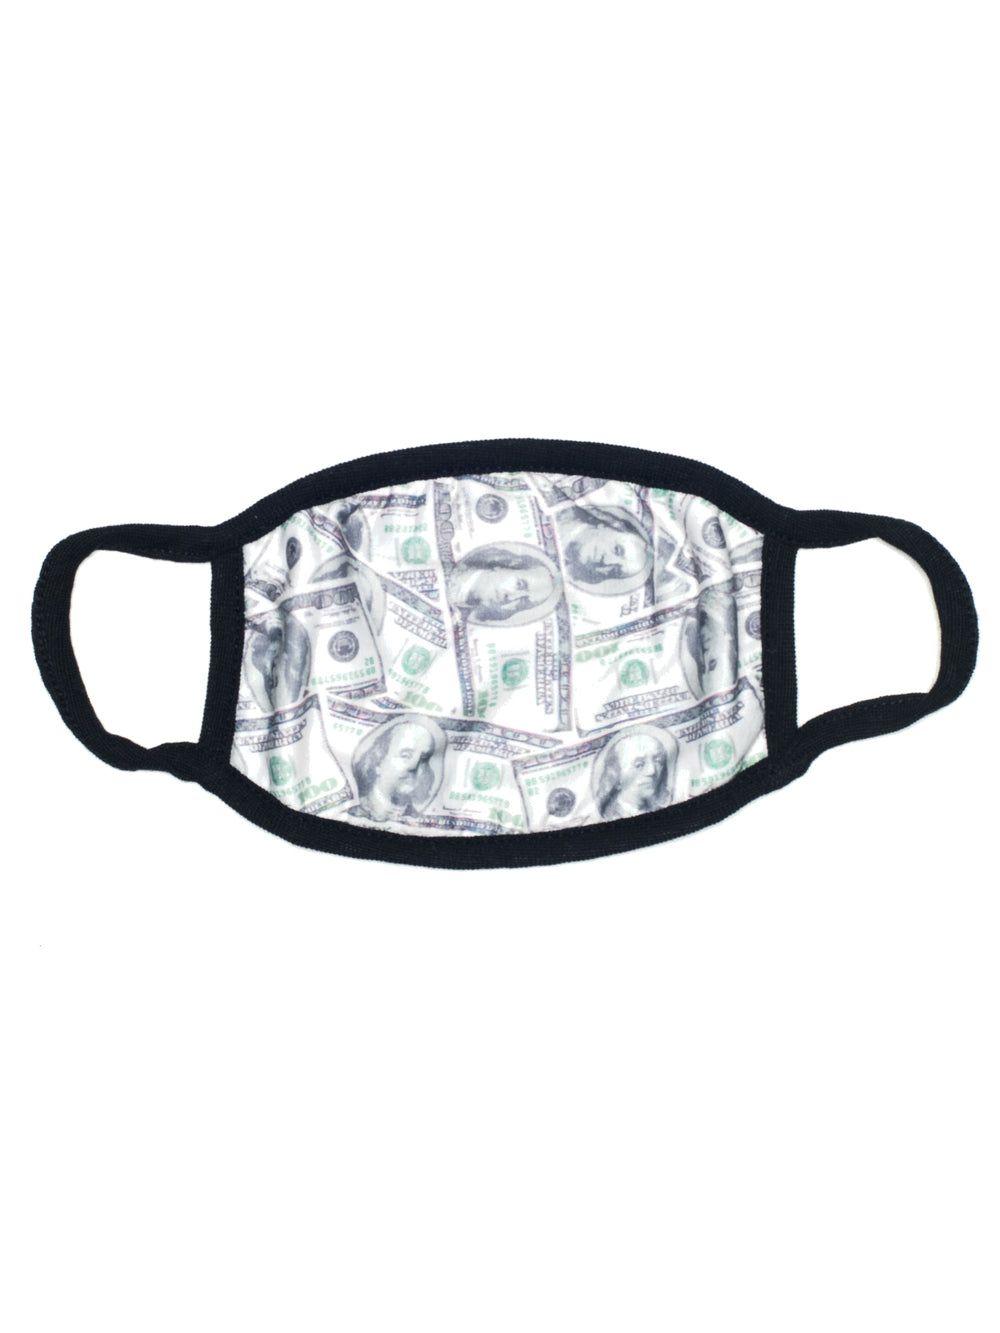 MONEY MASK